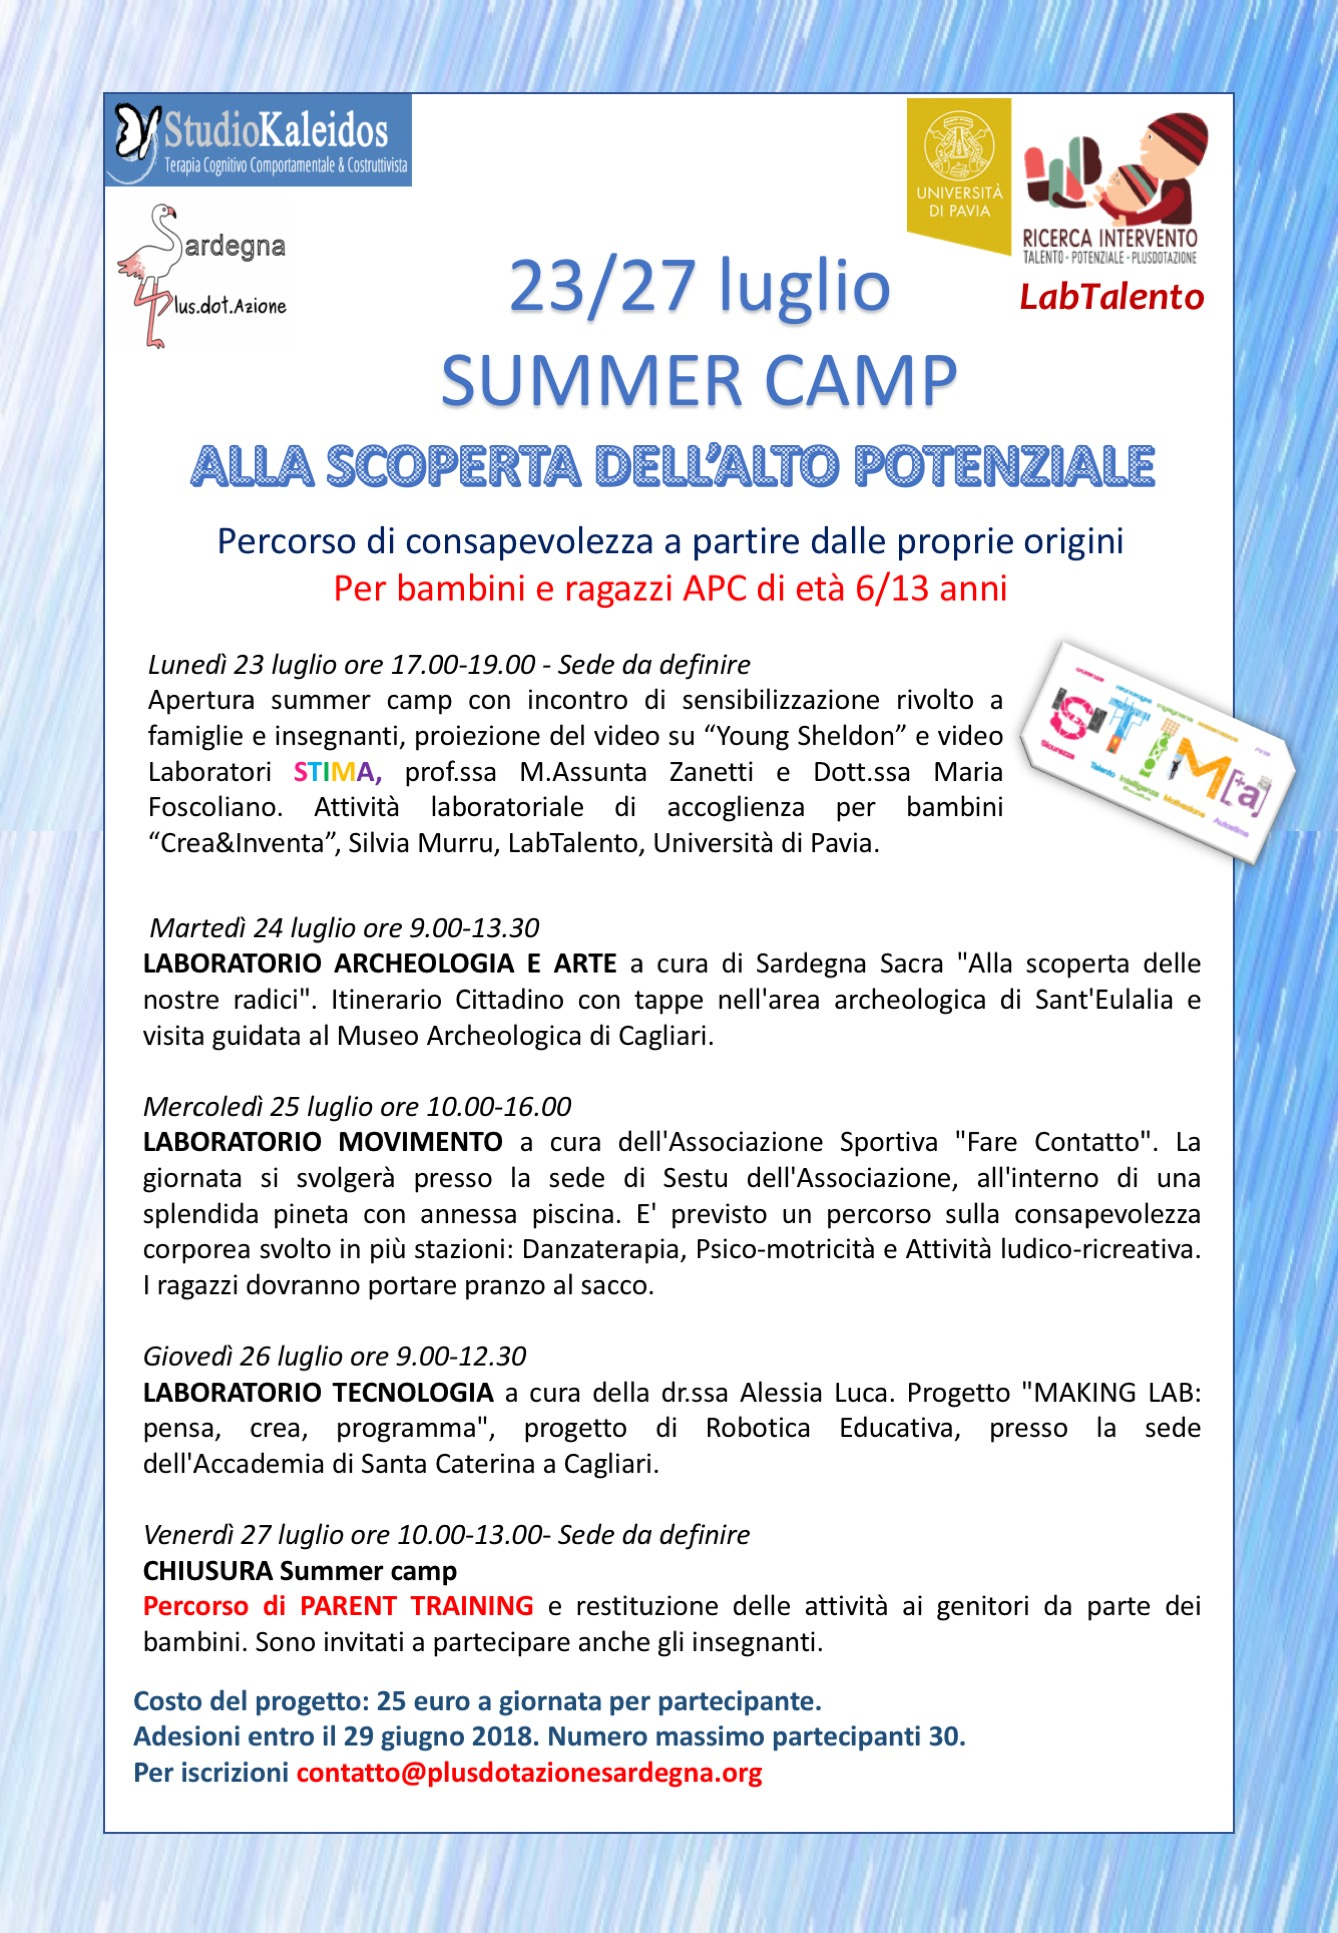 Summer Camp in Sardegna